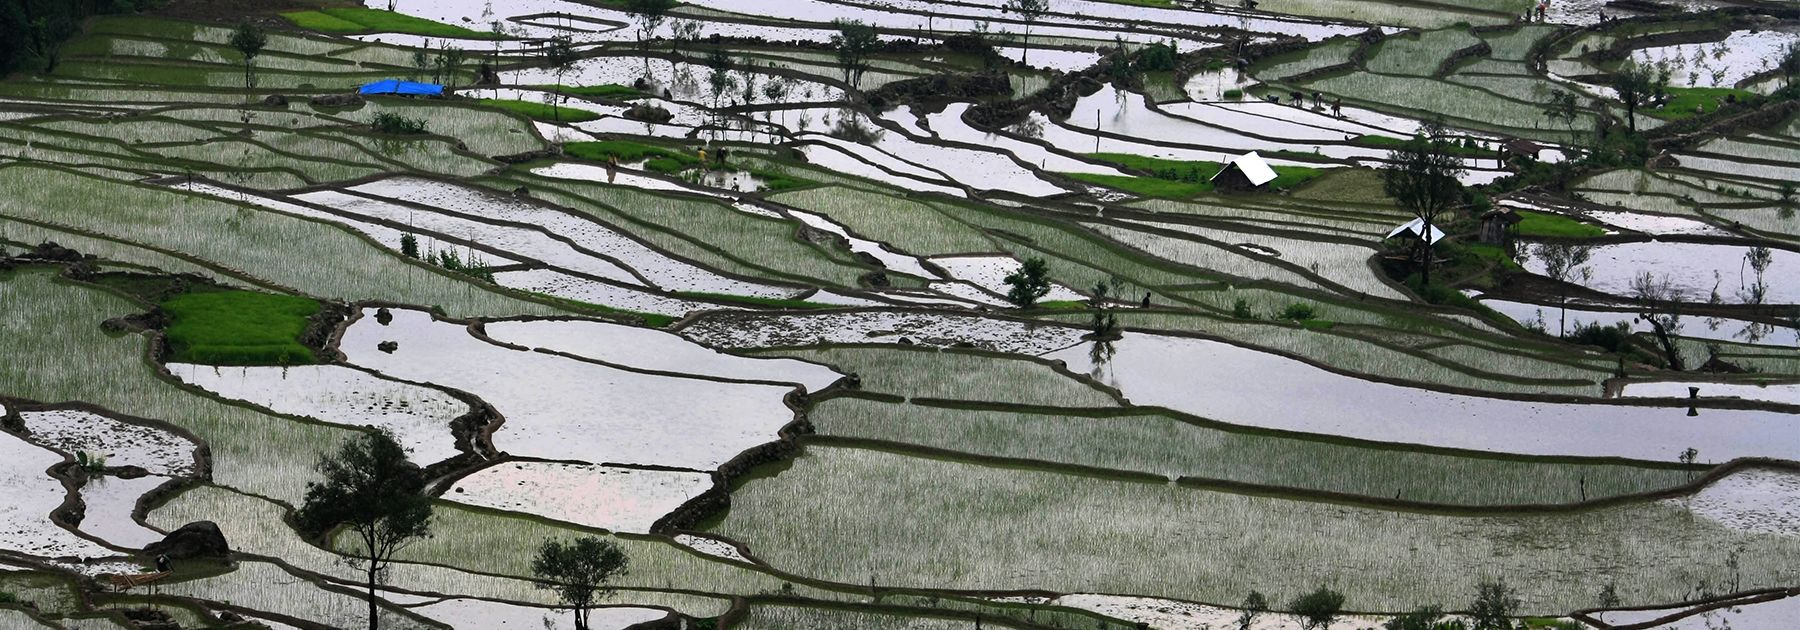 Tribal Naga farmers work in their water bedded rice paddy fields on the arrival of the monsoon at Kiwema Village. (STR/AFP/Getty Images)